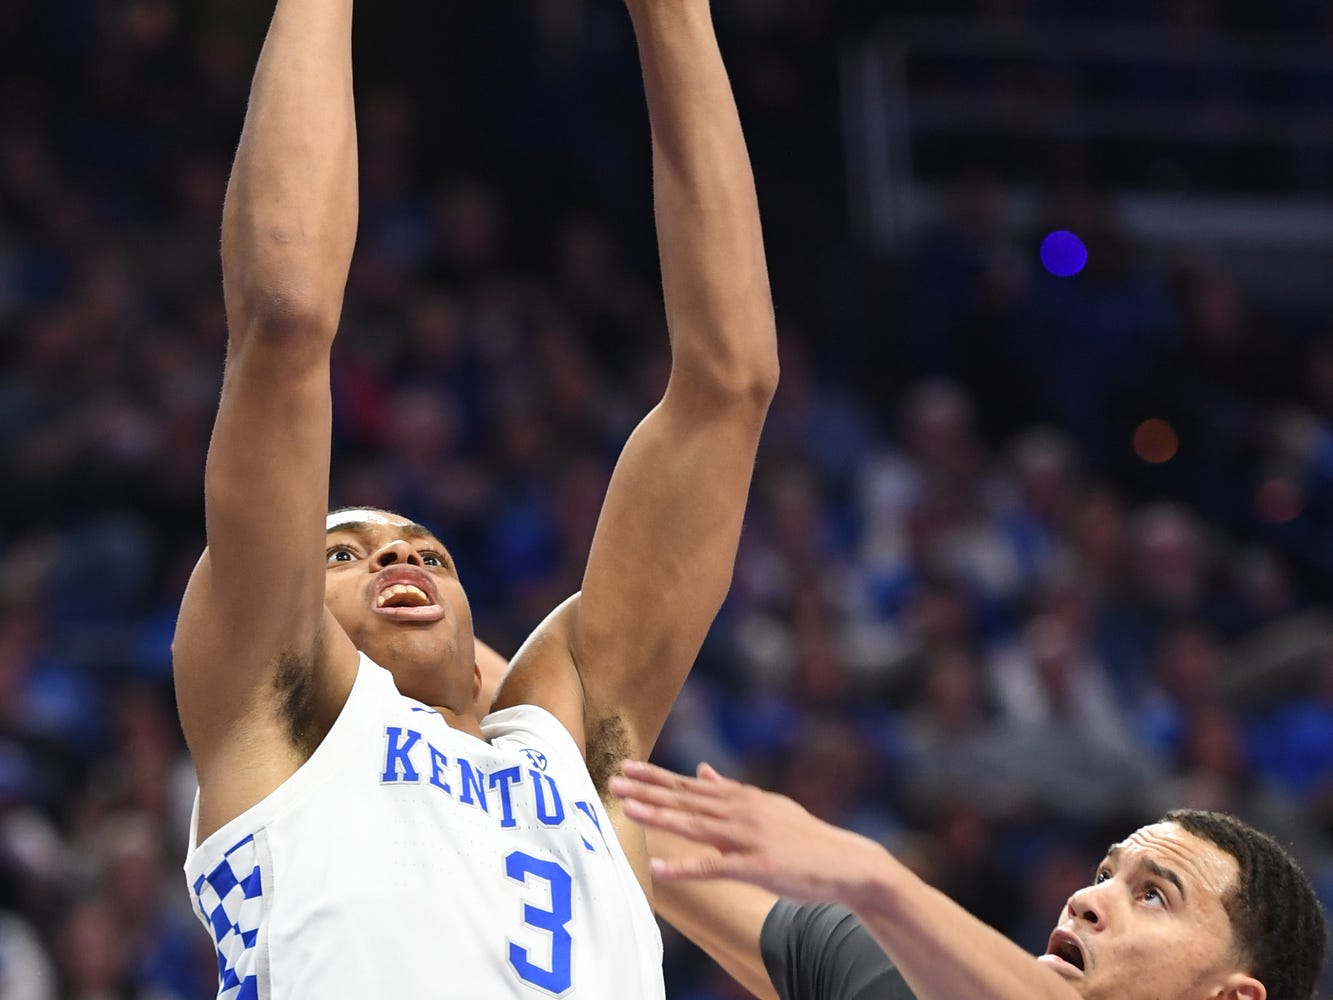 UK G Keldon Johnson puts up the ball during the University of Kentucky mens basketball game against Southern Illinois at Rupp Arena in Lexington, Kentucky on Friday, November 9, 2018.